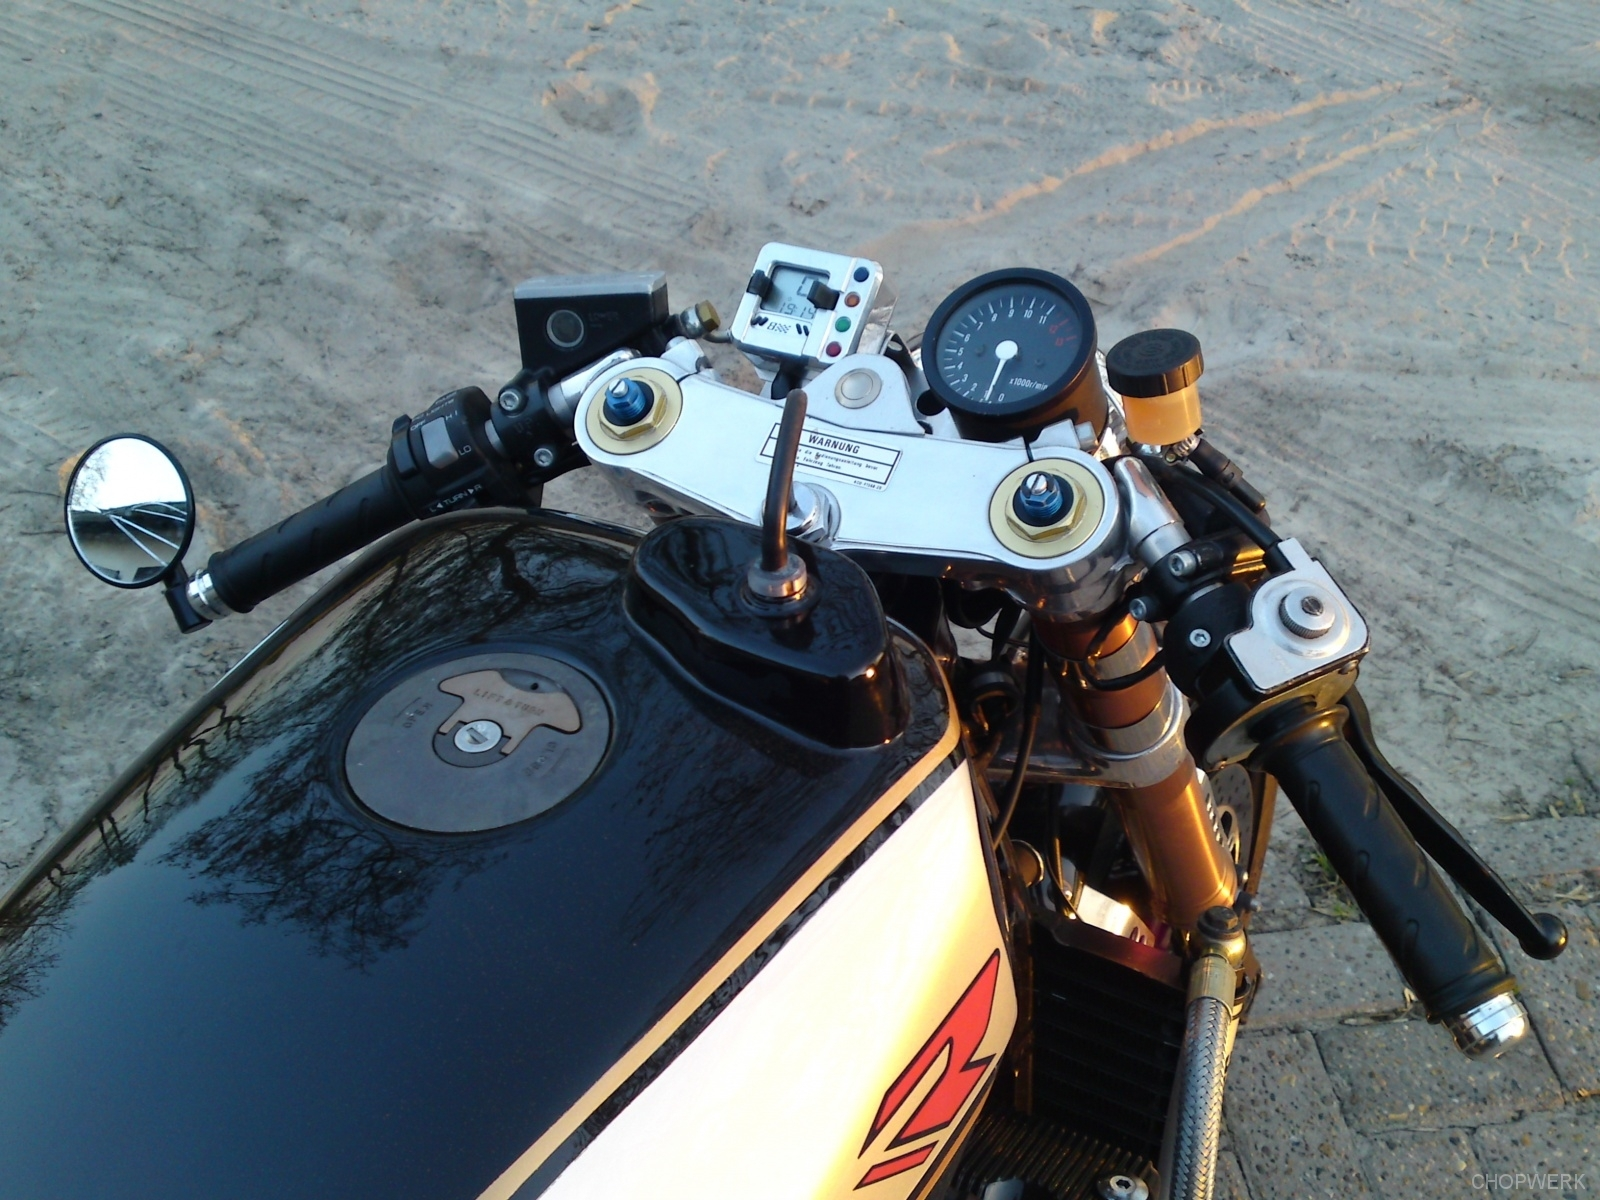 GSX-R-1100-caferacer-9